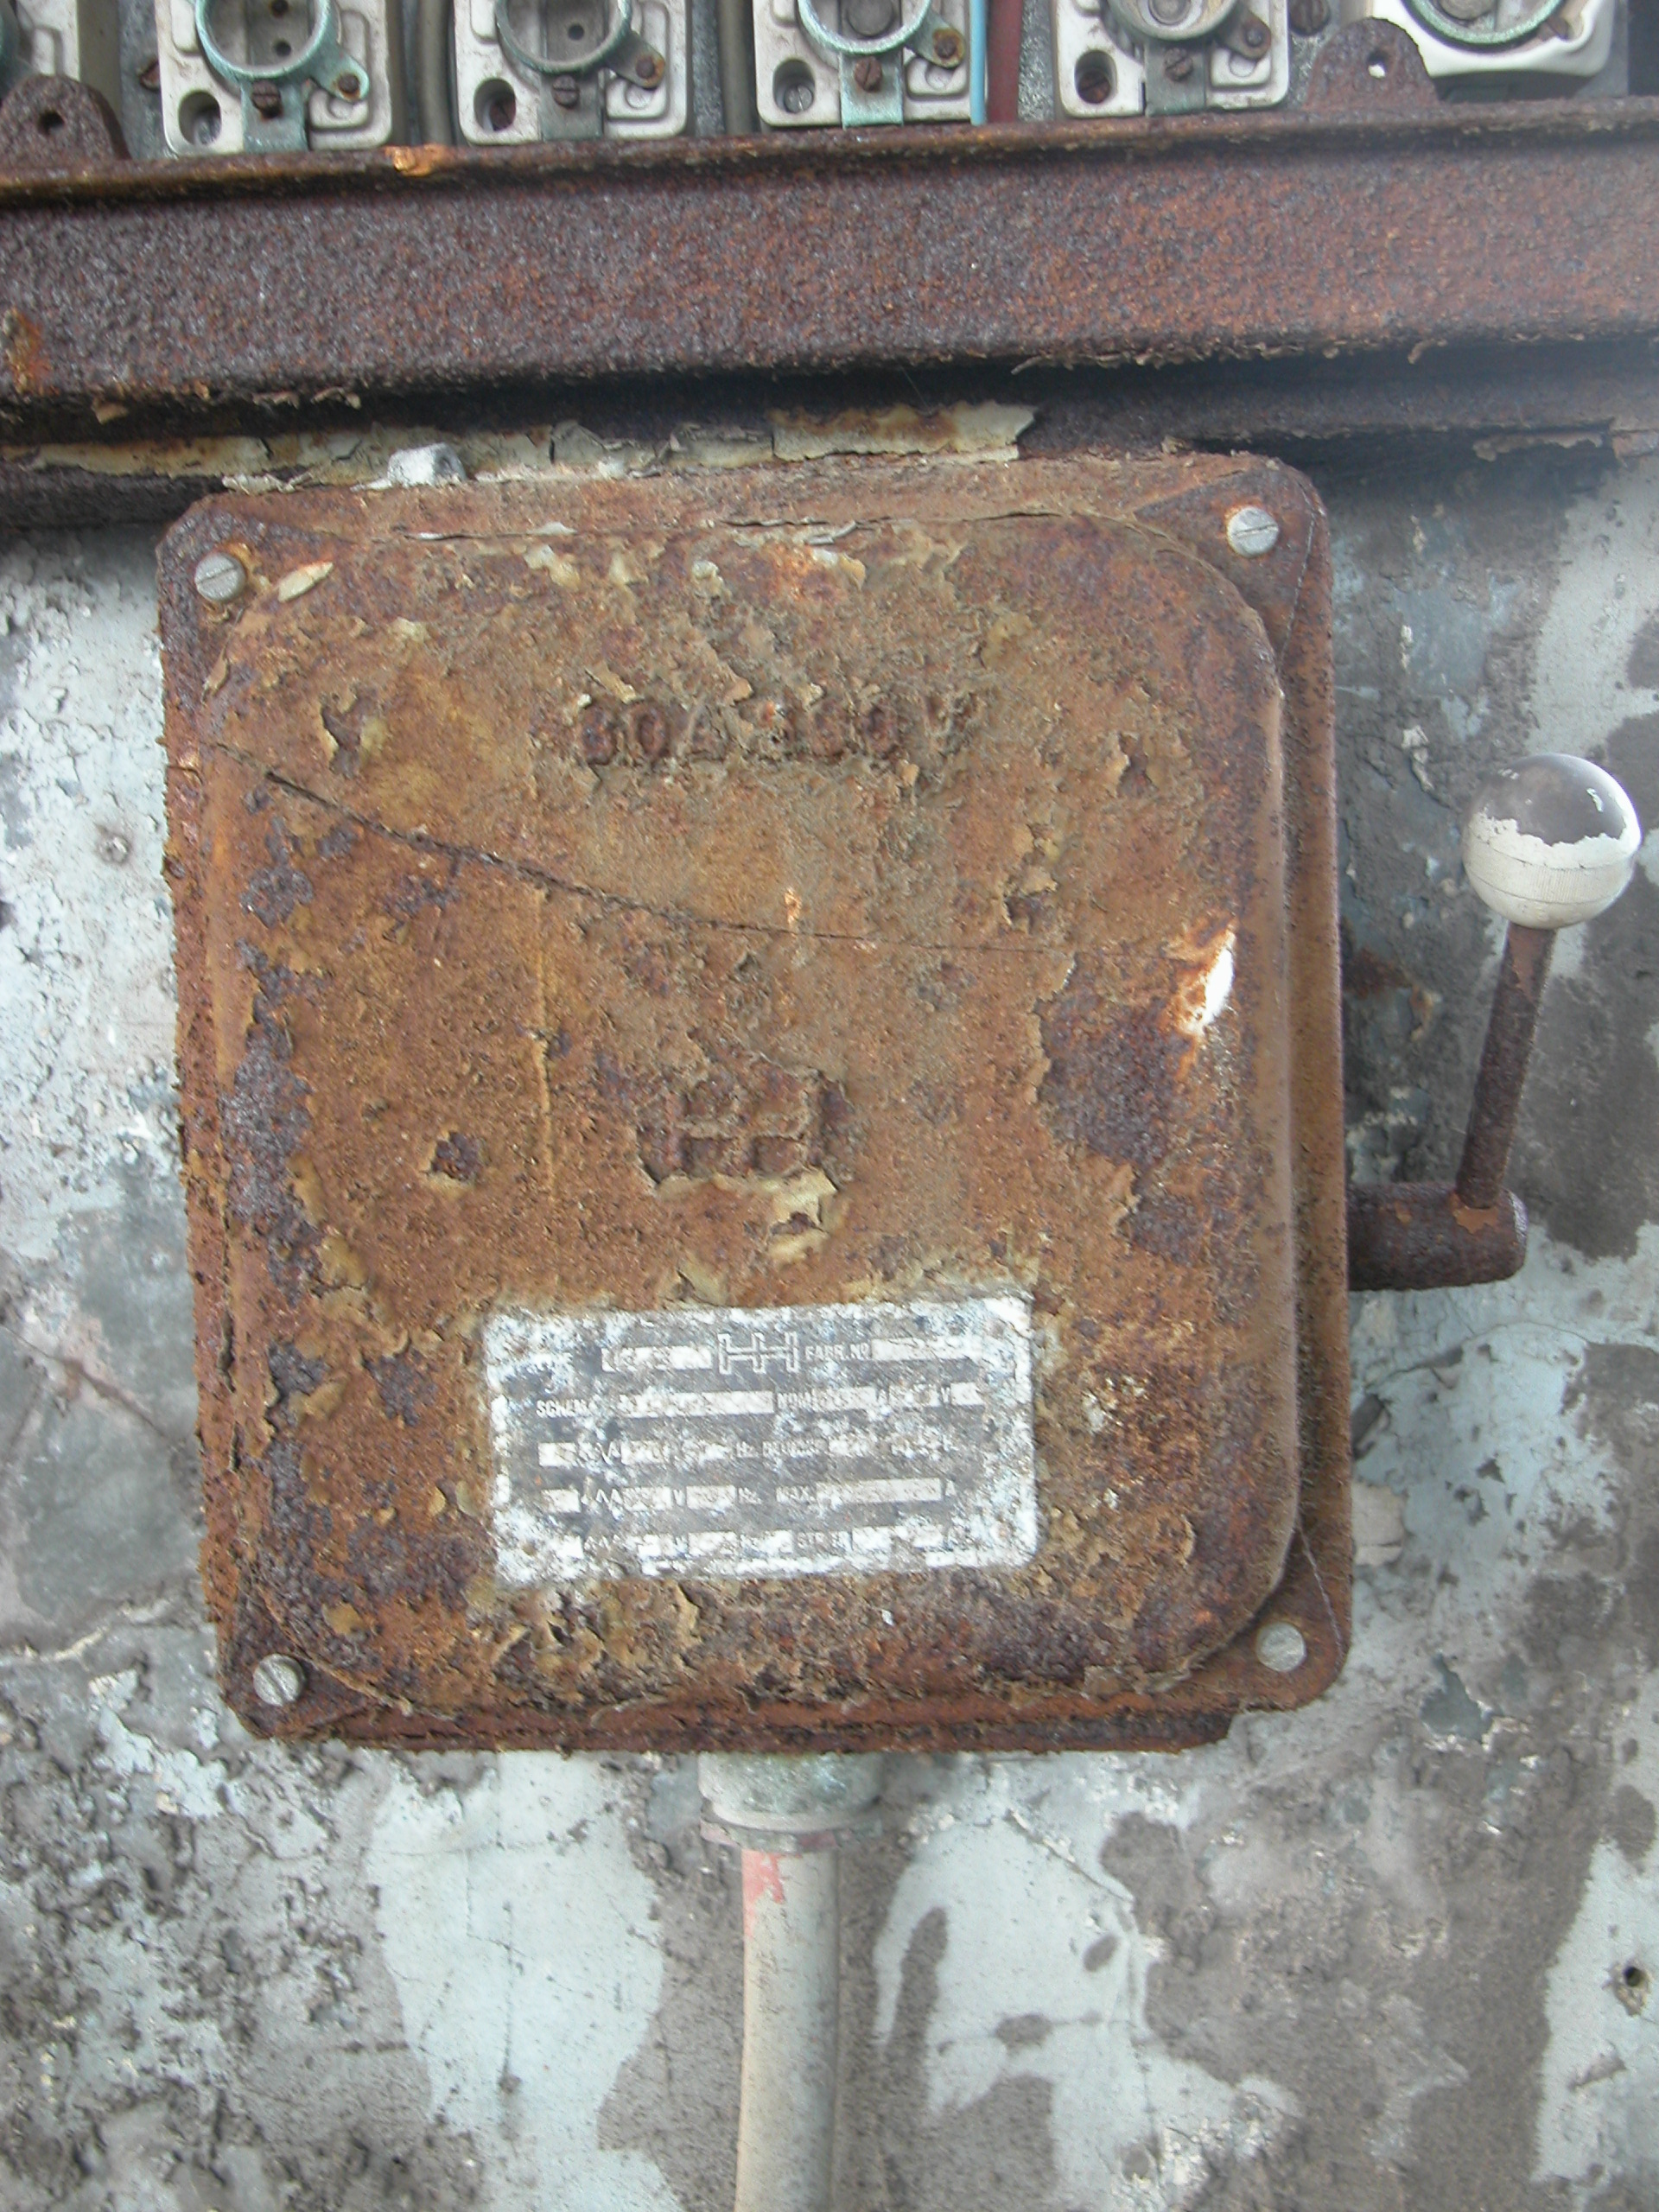 Fuse Box Metals Wiring Library Jaguar Xjs Starter Relay Diagram Free Picture Imageafter Textures Fusebox Objects Square Rusted Electricity Handle